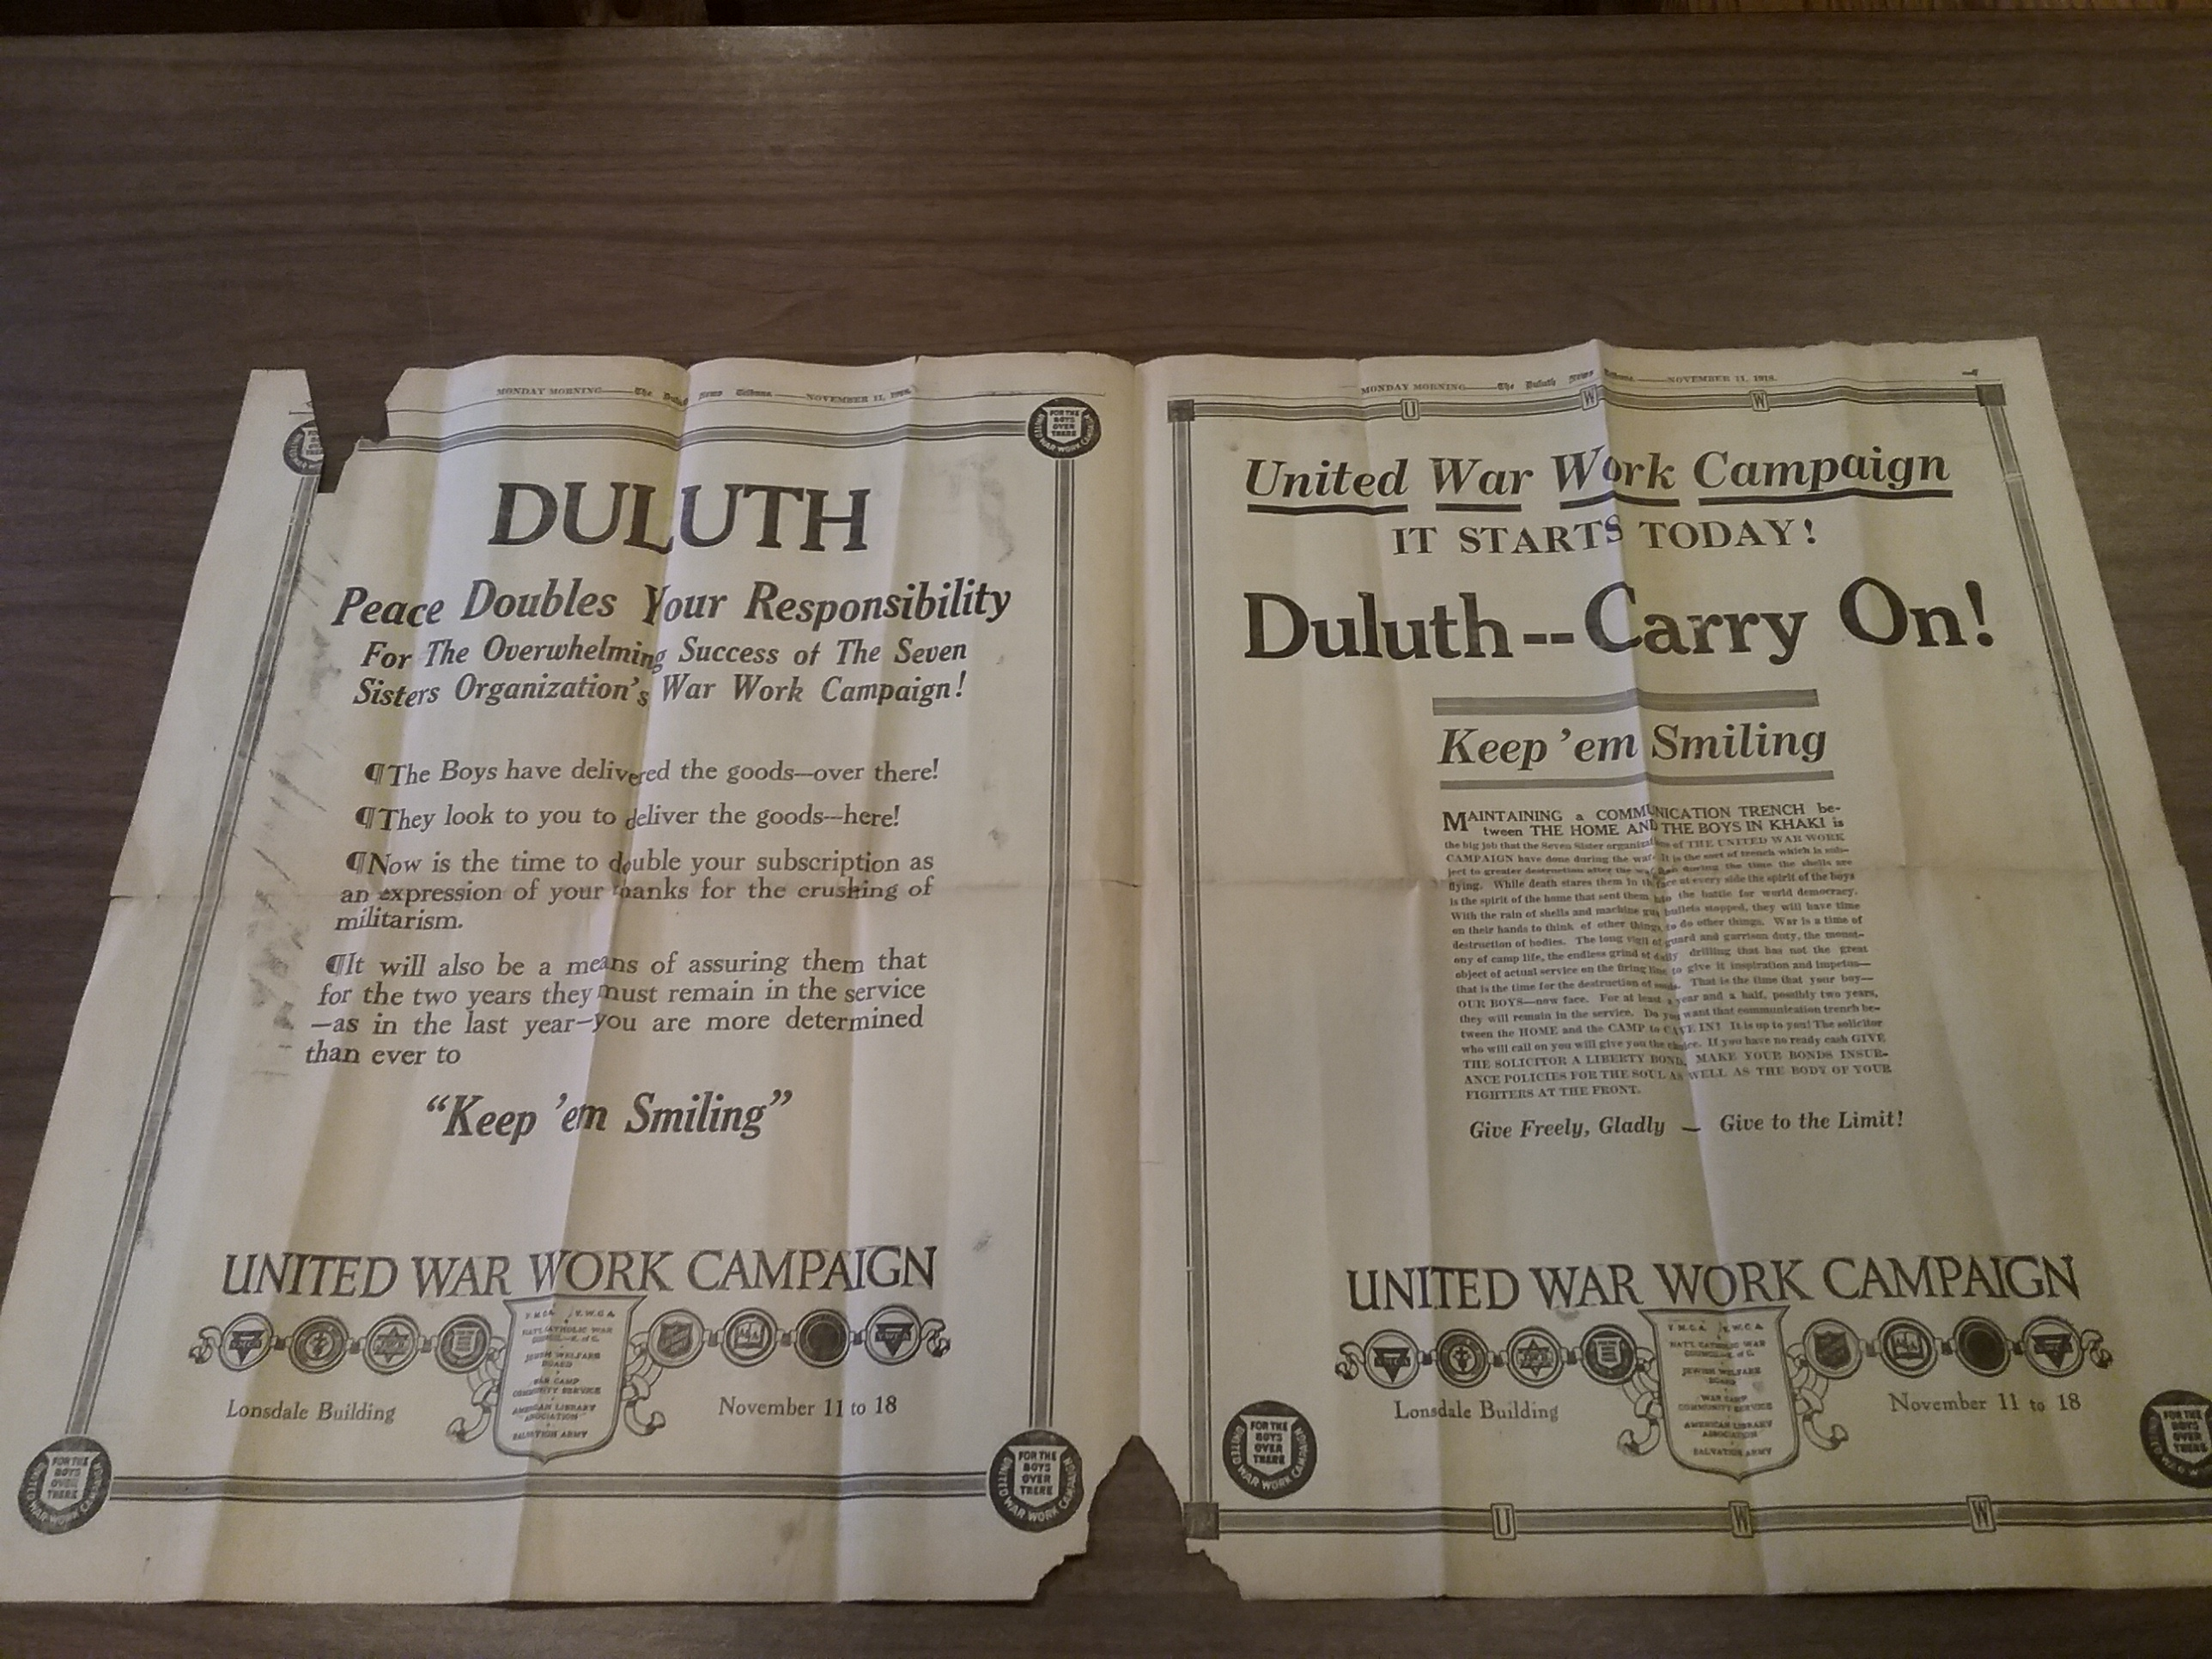 Armistice Day, November 11, 1918, announcement of the end of World War I from The Duluth News Tribune, pages 2 & 3.